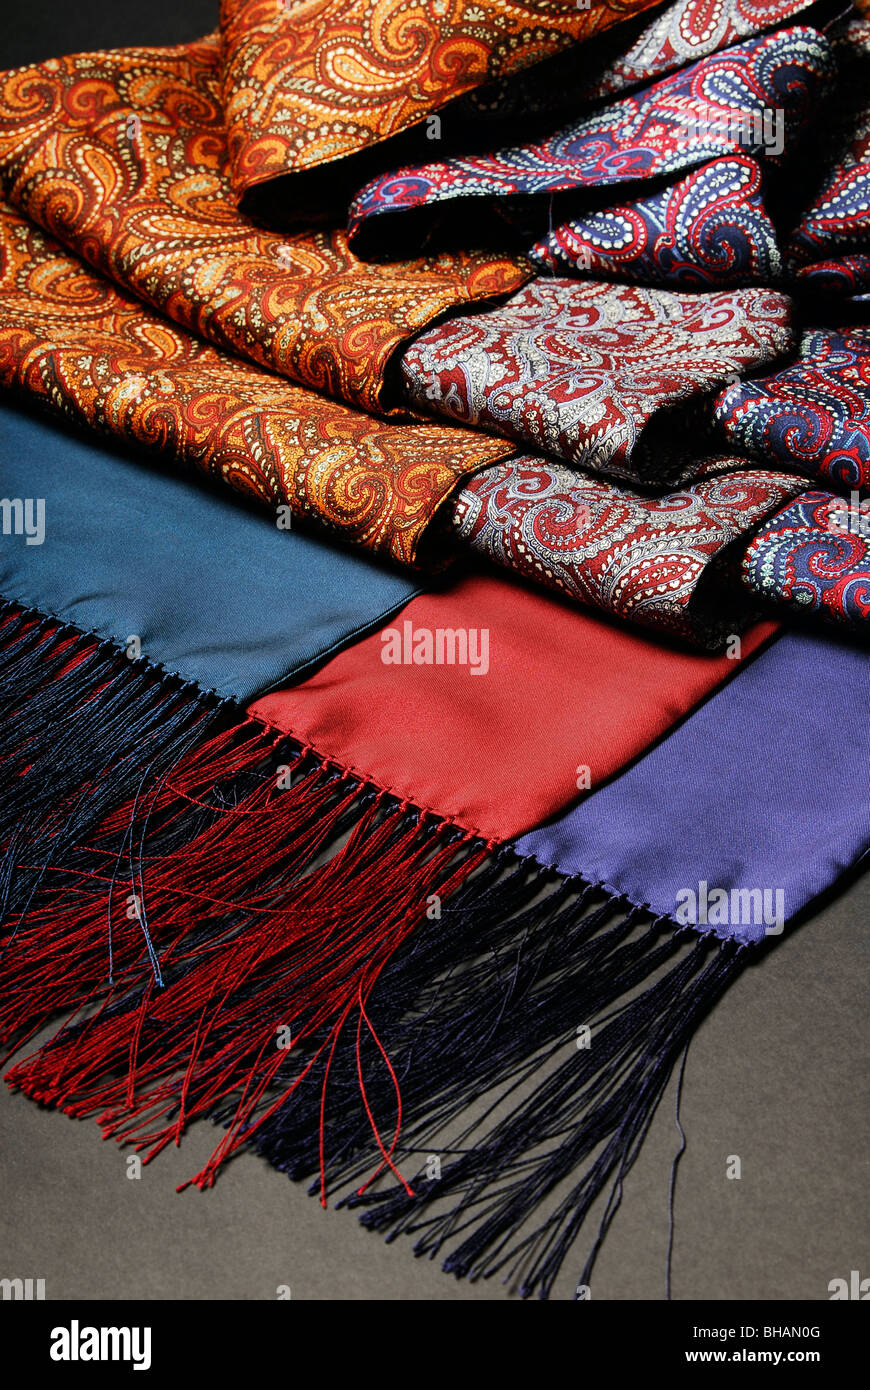 Three silk paisley scarves on a black background - Stock Image